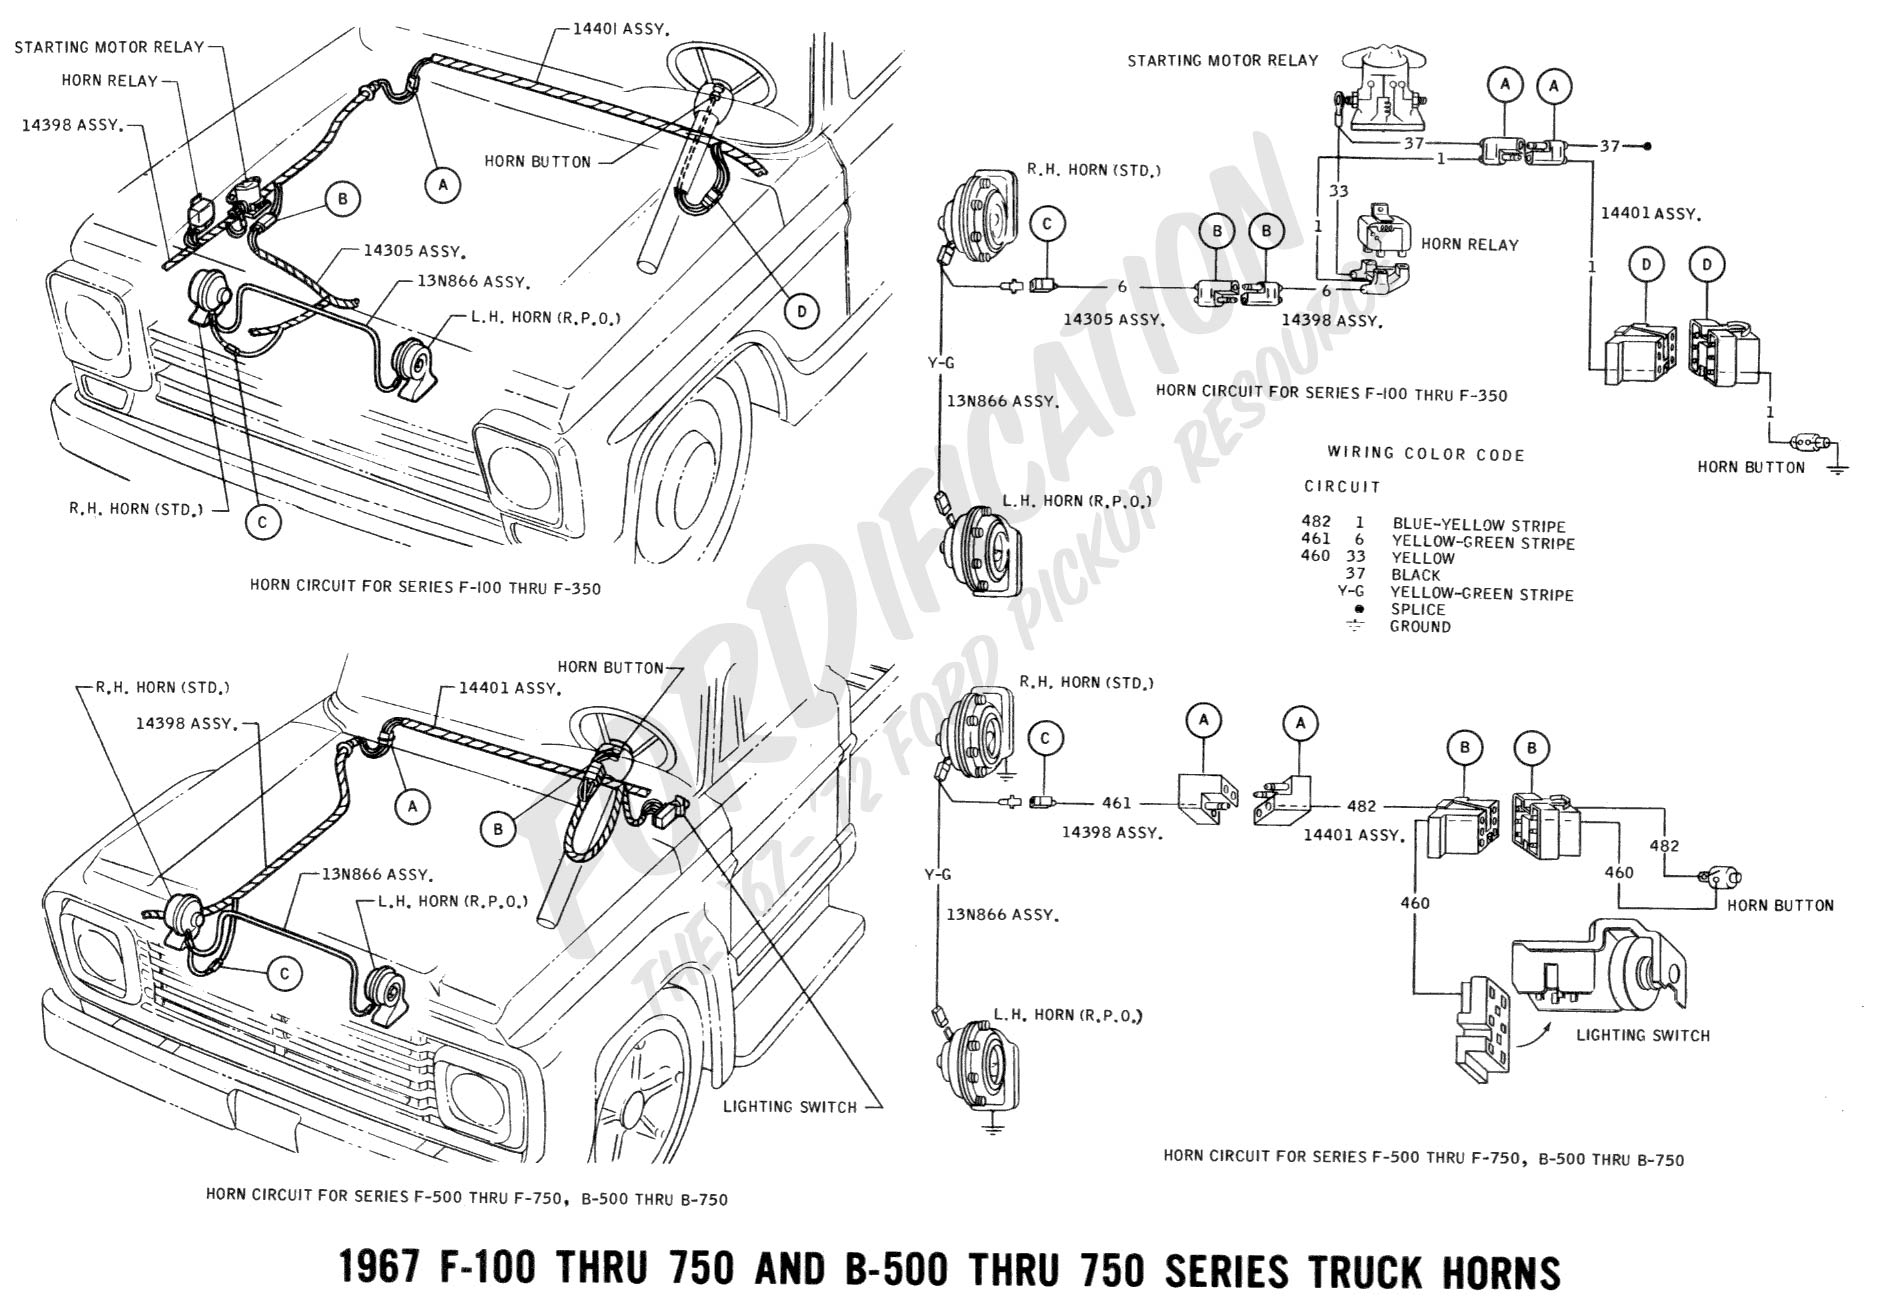 wiring diagrams of 1960 ford v8 fairlane fairlane 500 · ford truck  technical drawings and schematics